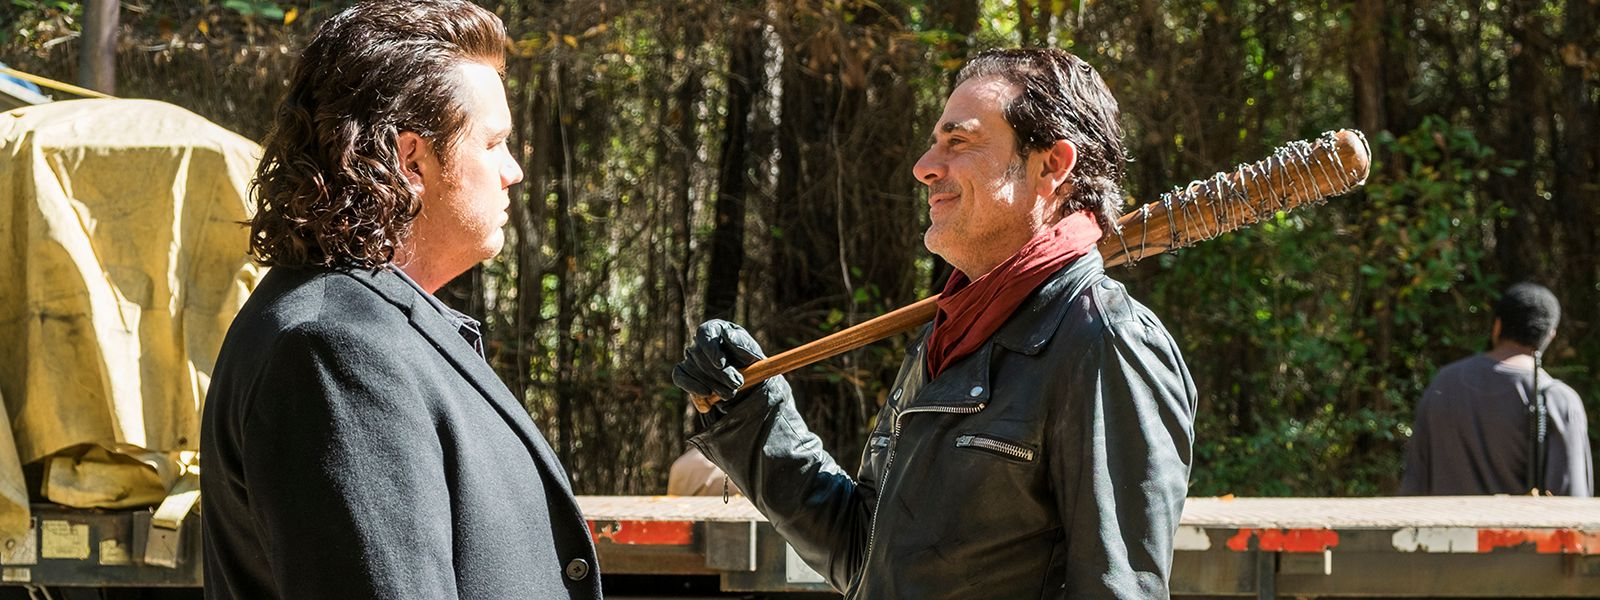 the-walking-dead-episode-716-eugene-mcdermitt-negan-morgan-pre-800×600